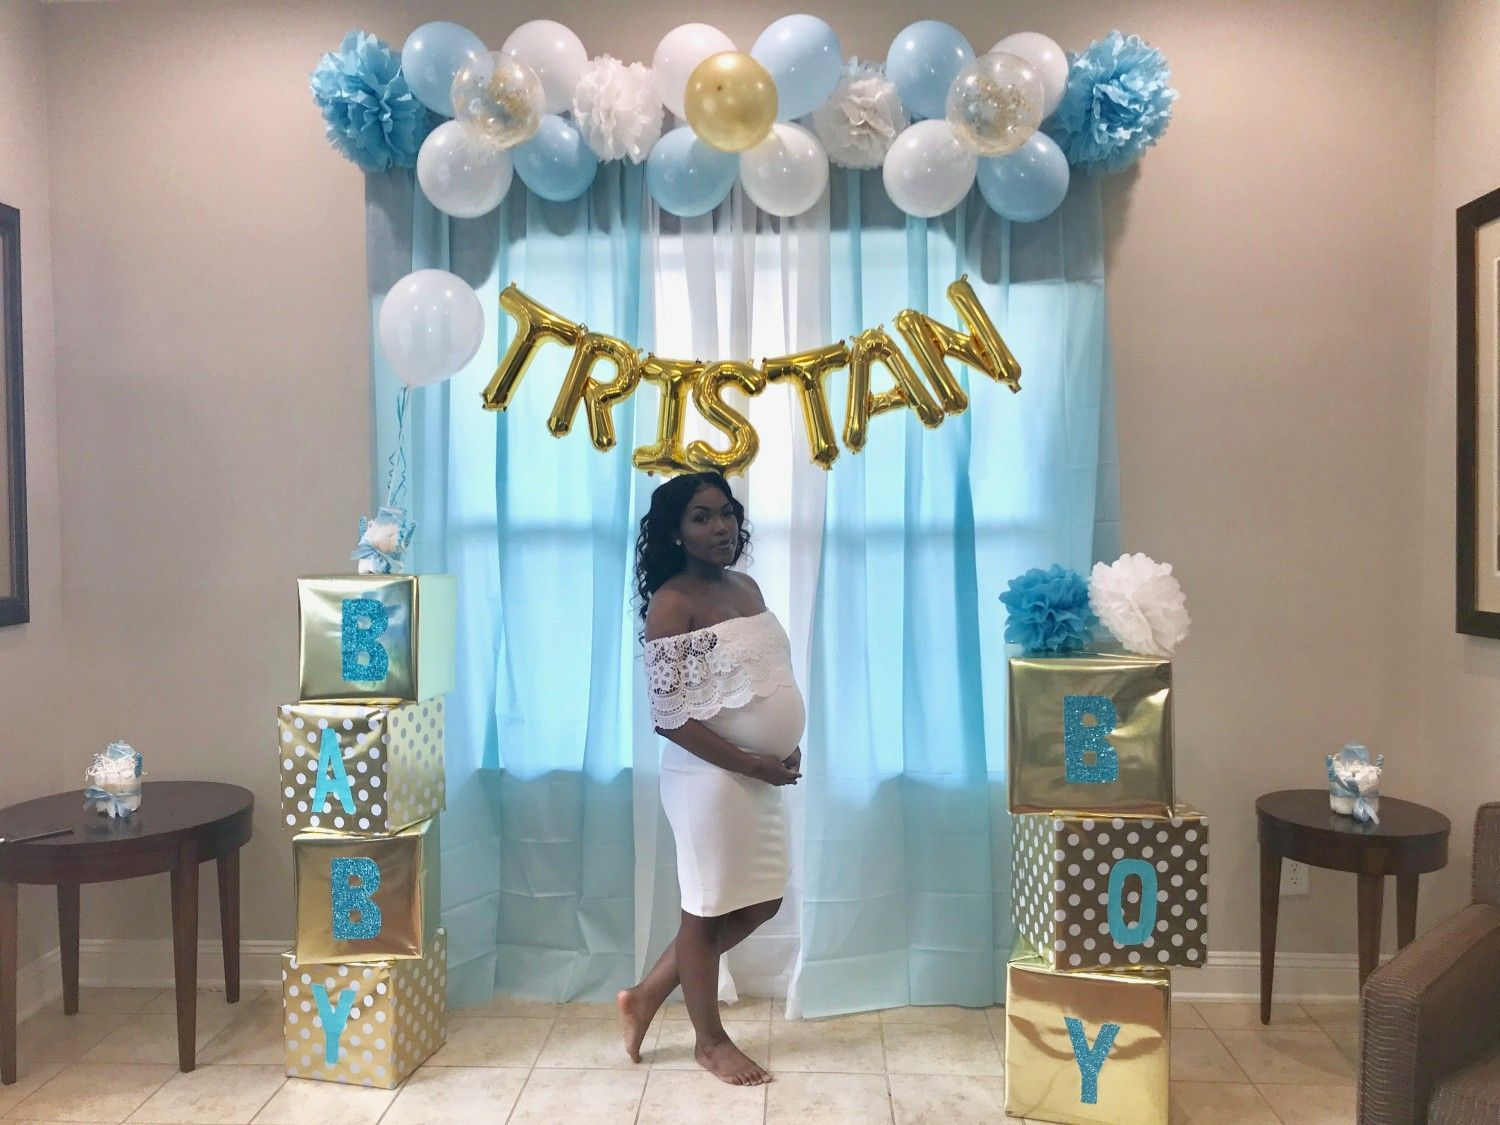 Baby Shower Photo Backdrop Decoracionbabyshowergirl